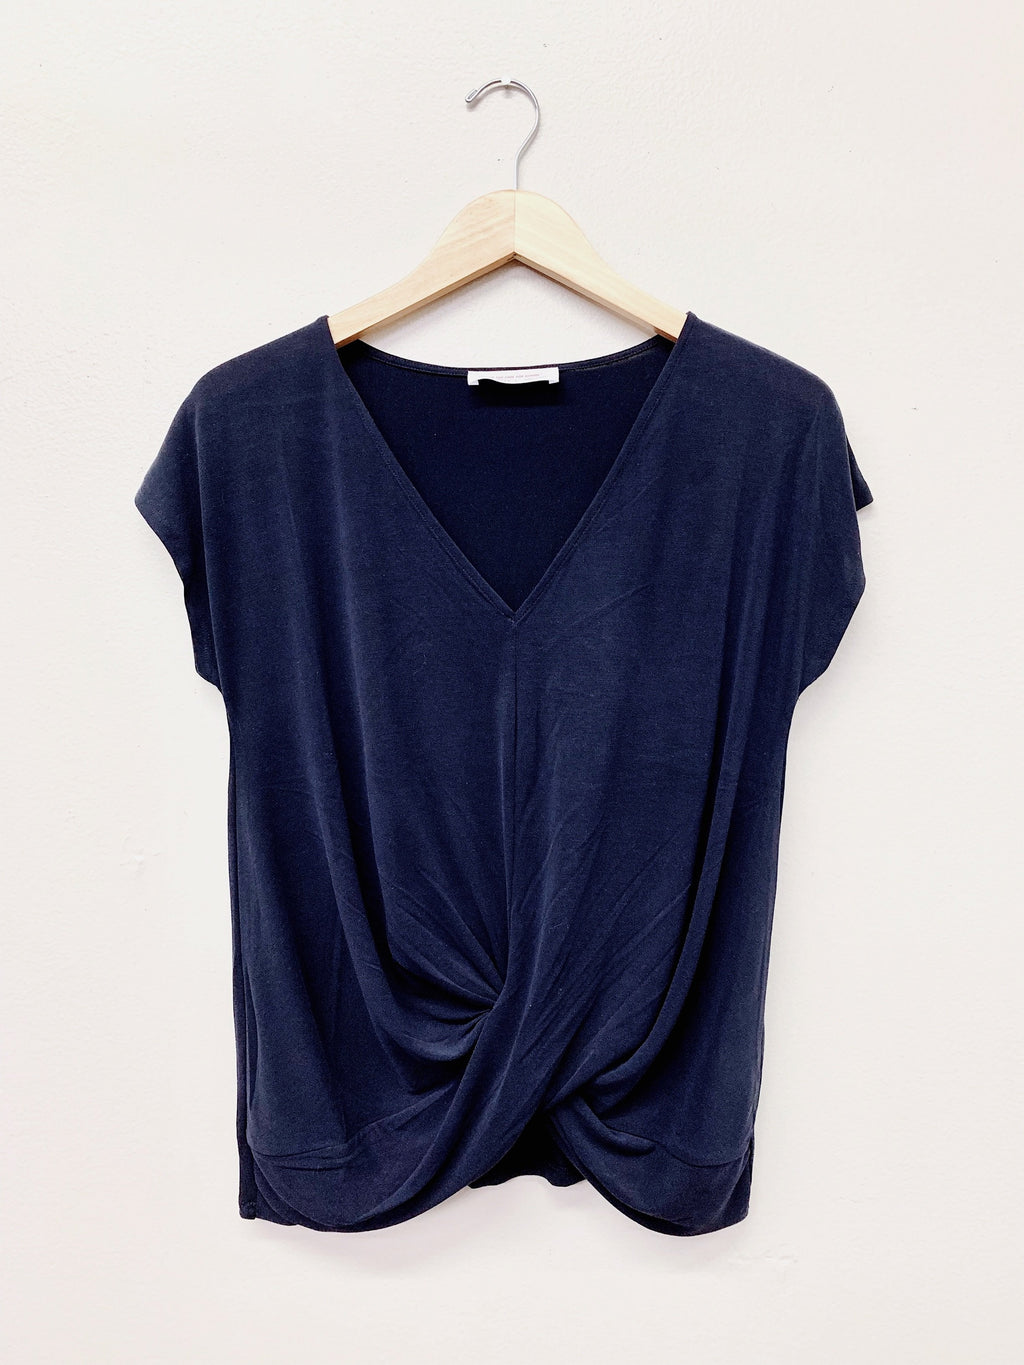 Make It Last Top- Dark Navy